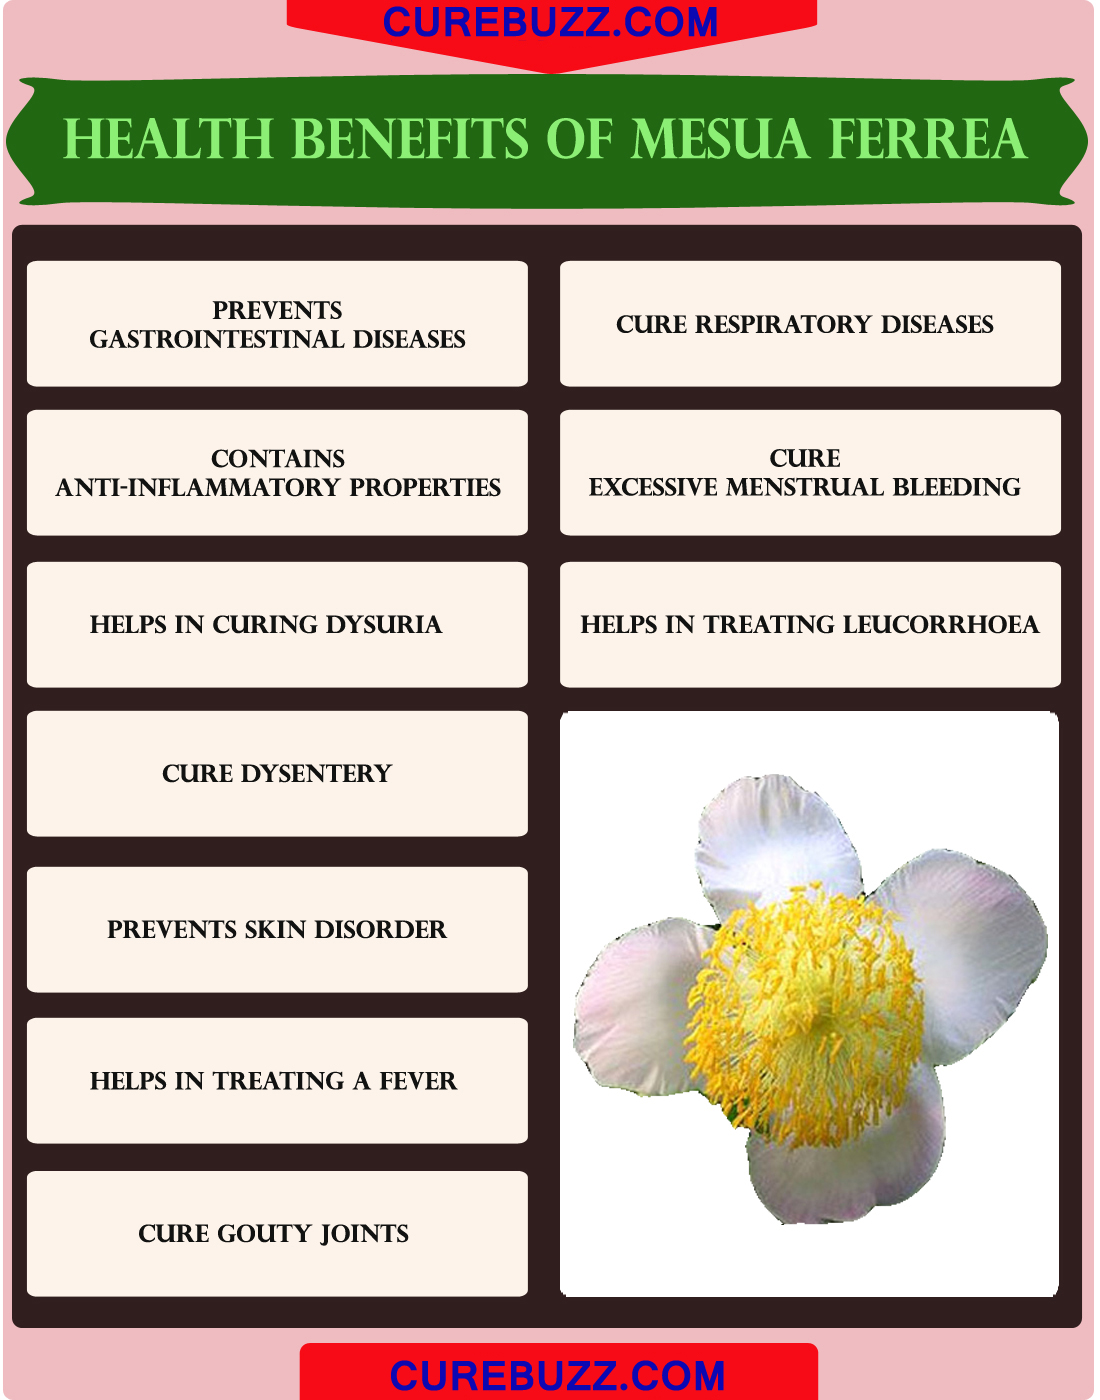 Health Benefits of Mesua Ferrea